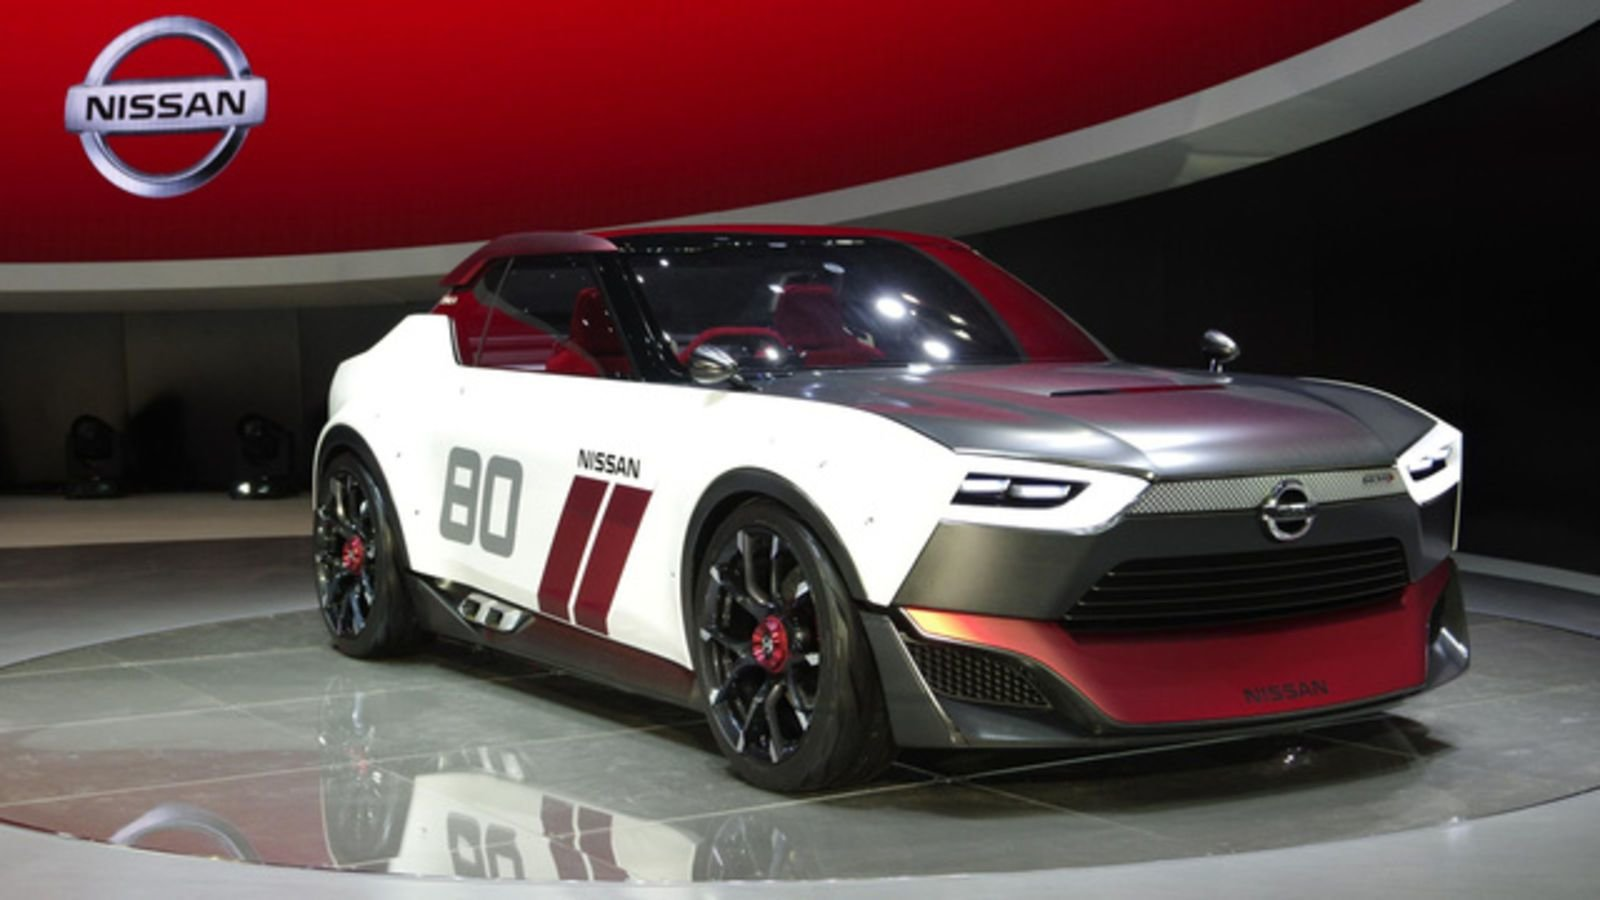 New The Nissan Idx Nismo Concept Is The Rebirth Of The G*D On This Month